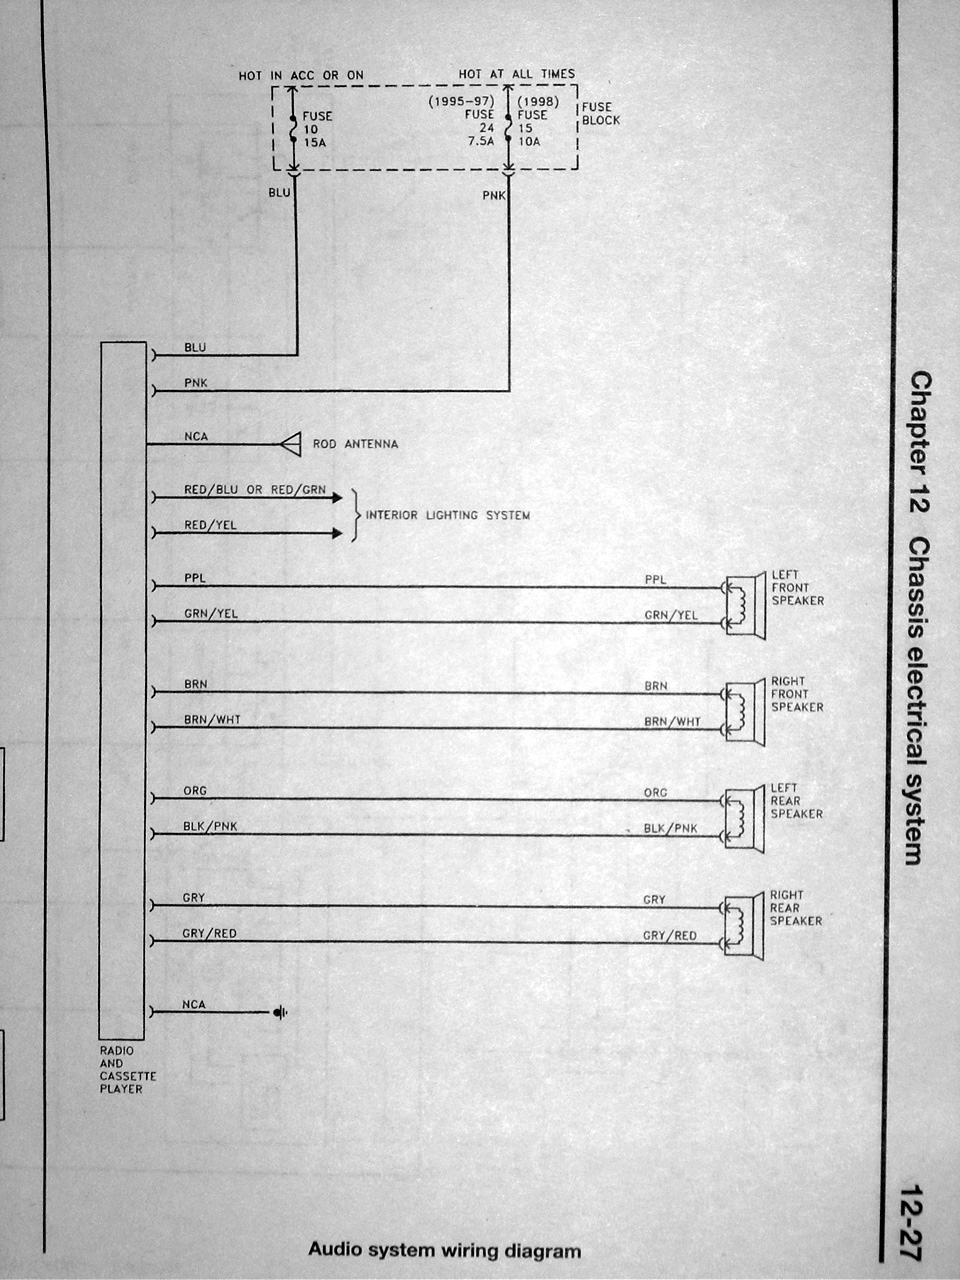 DSC01849 wiring diagram thread *useful info* nissan forum 2004 nissan sentra radio wiring diagram at nearapp.co